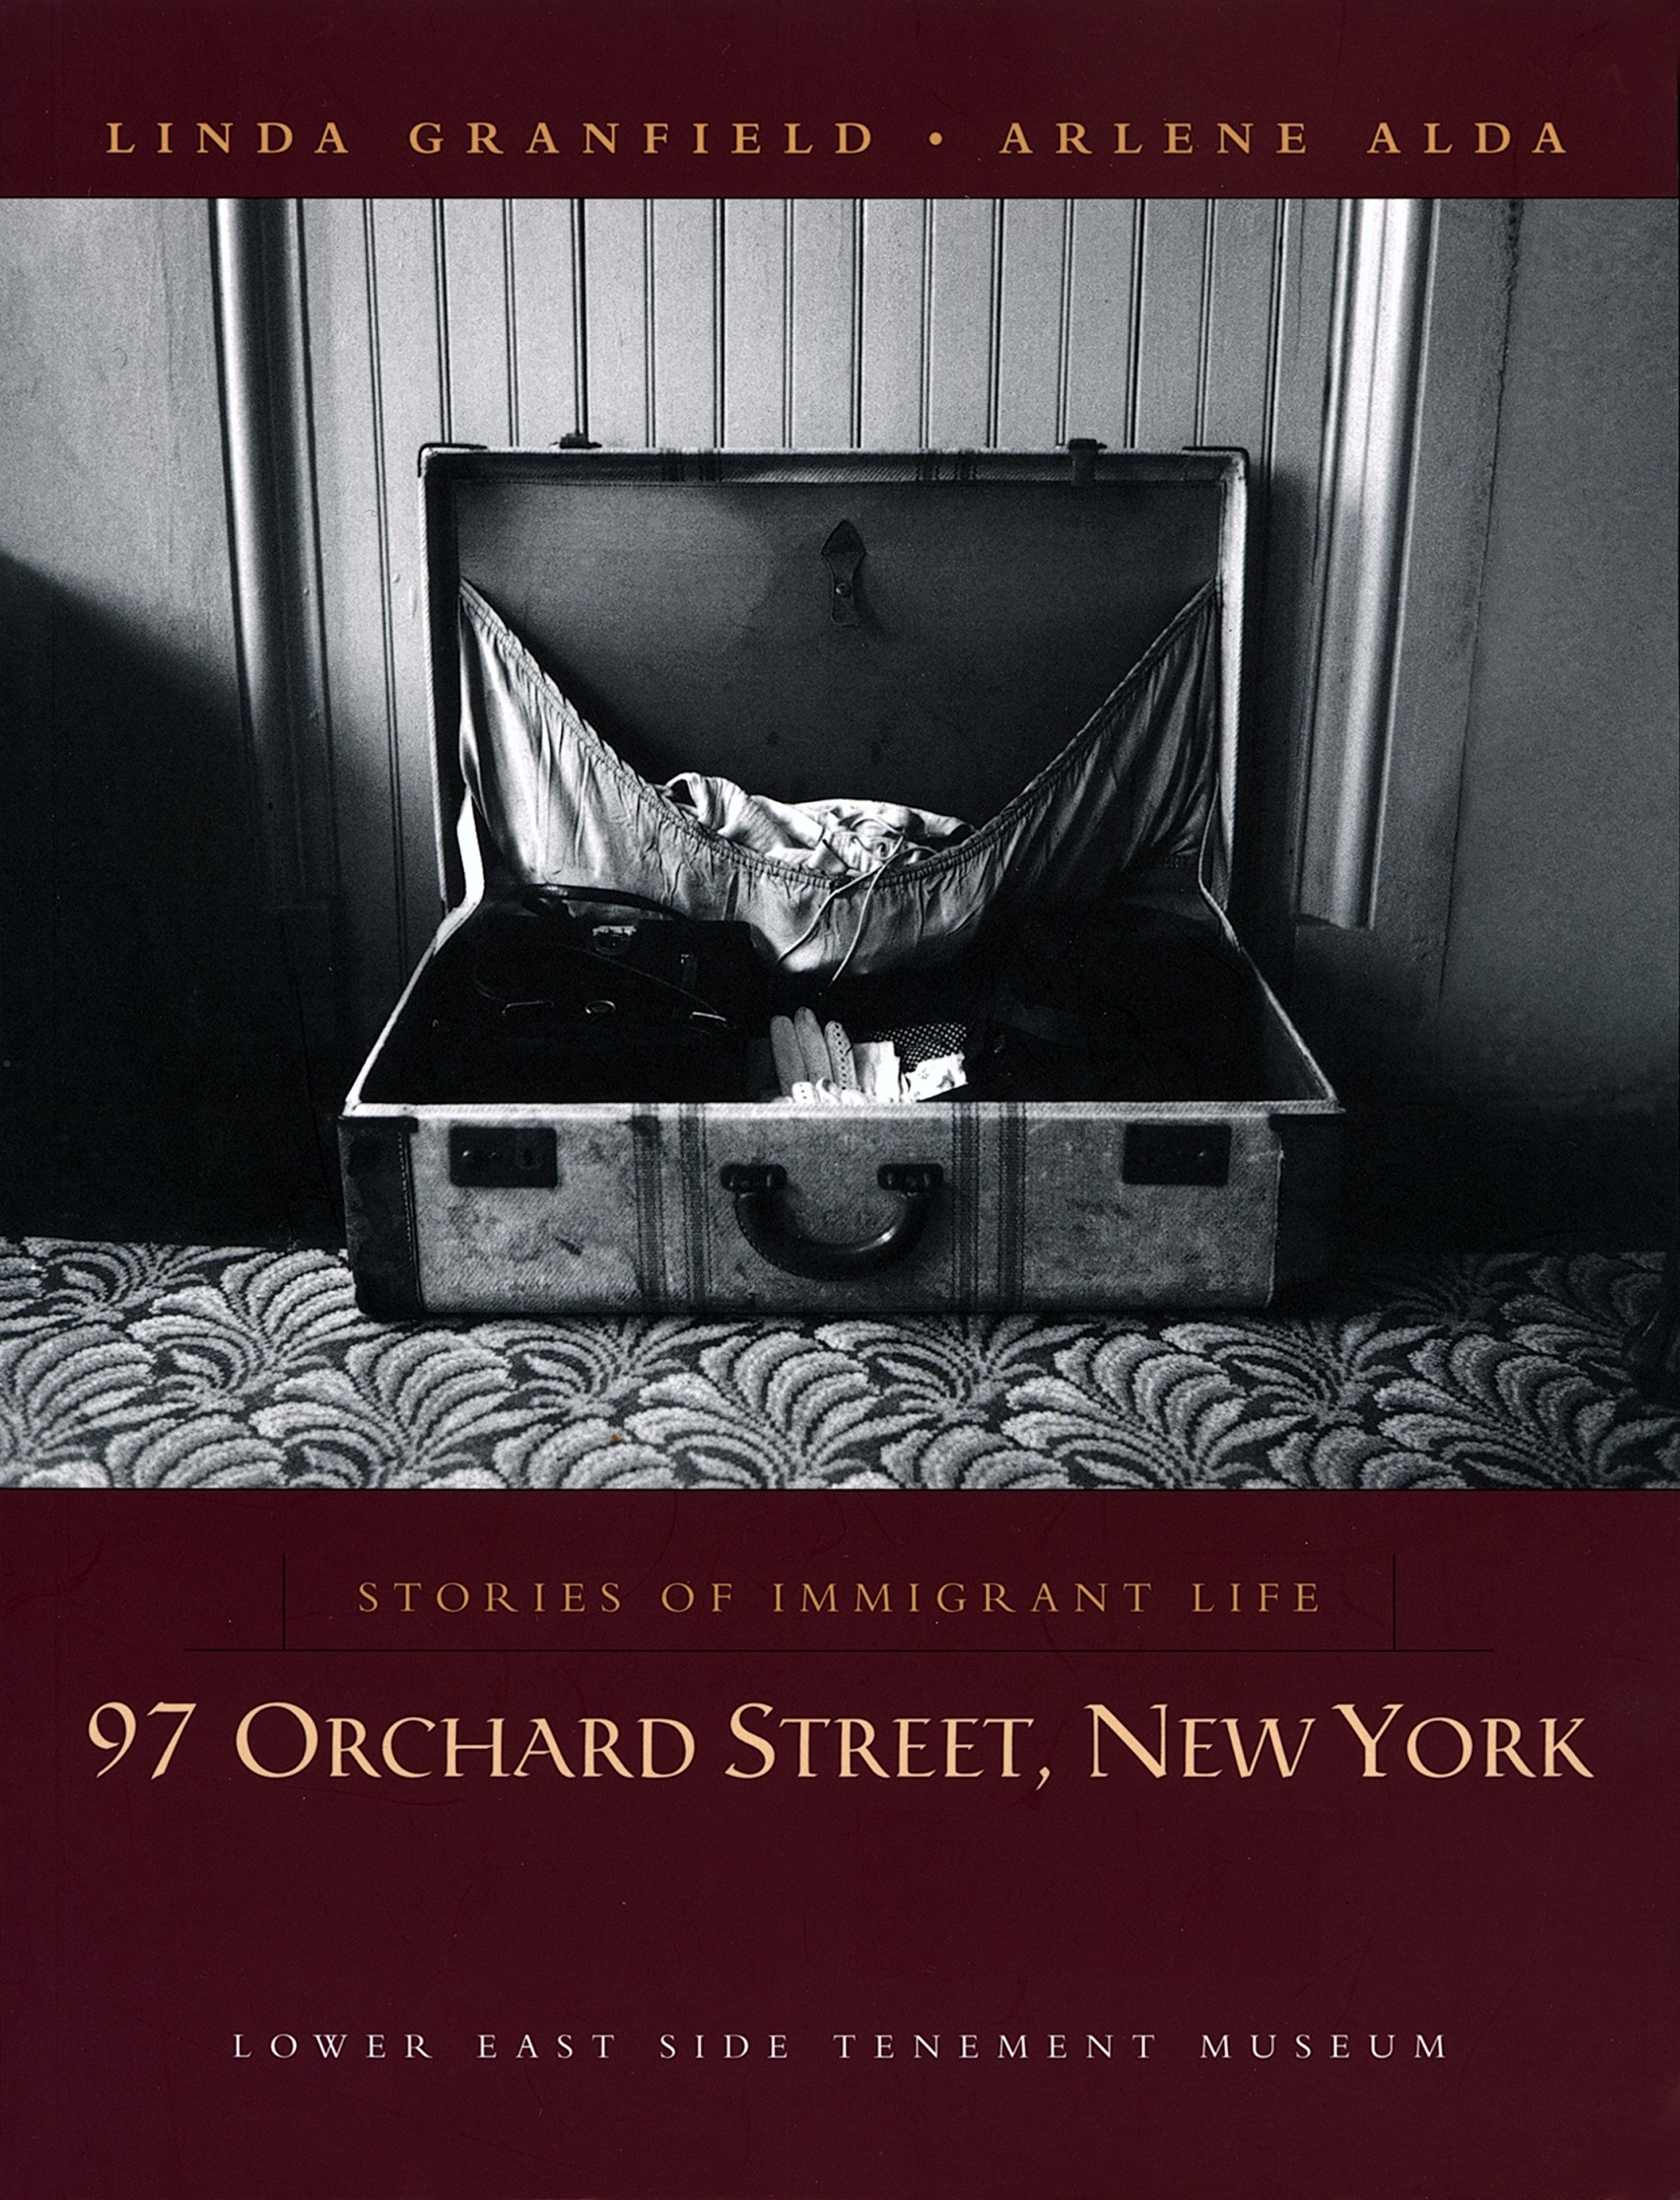 97 Orchard Street, New York: Stories of Immigrant Life